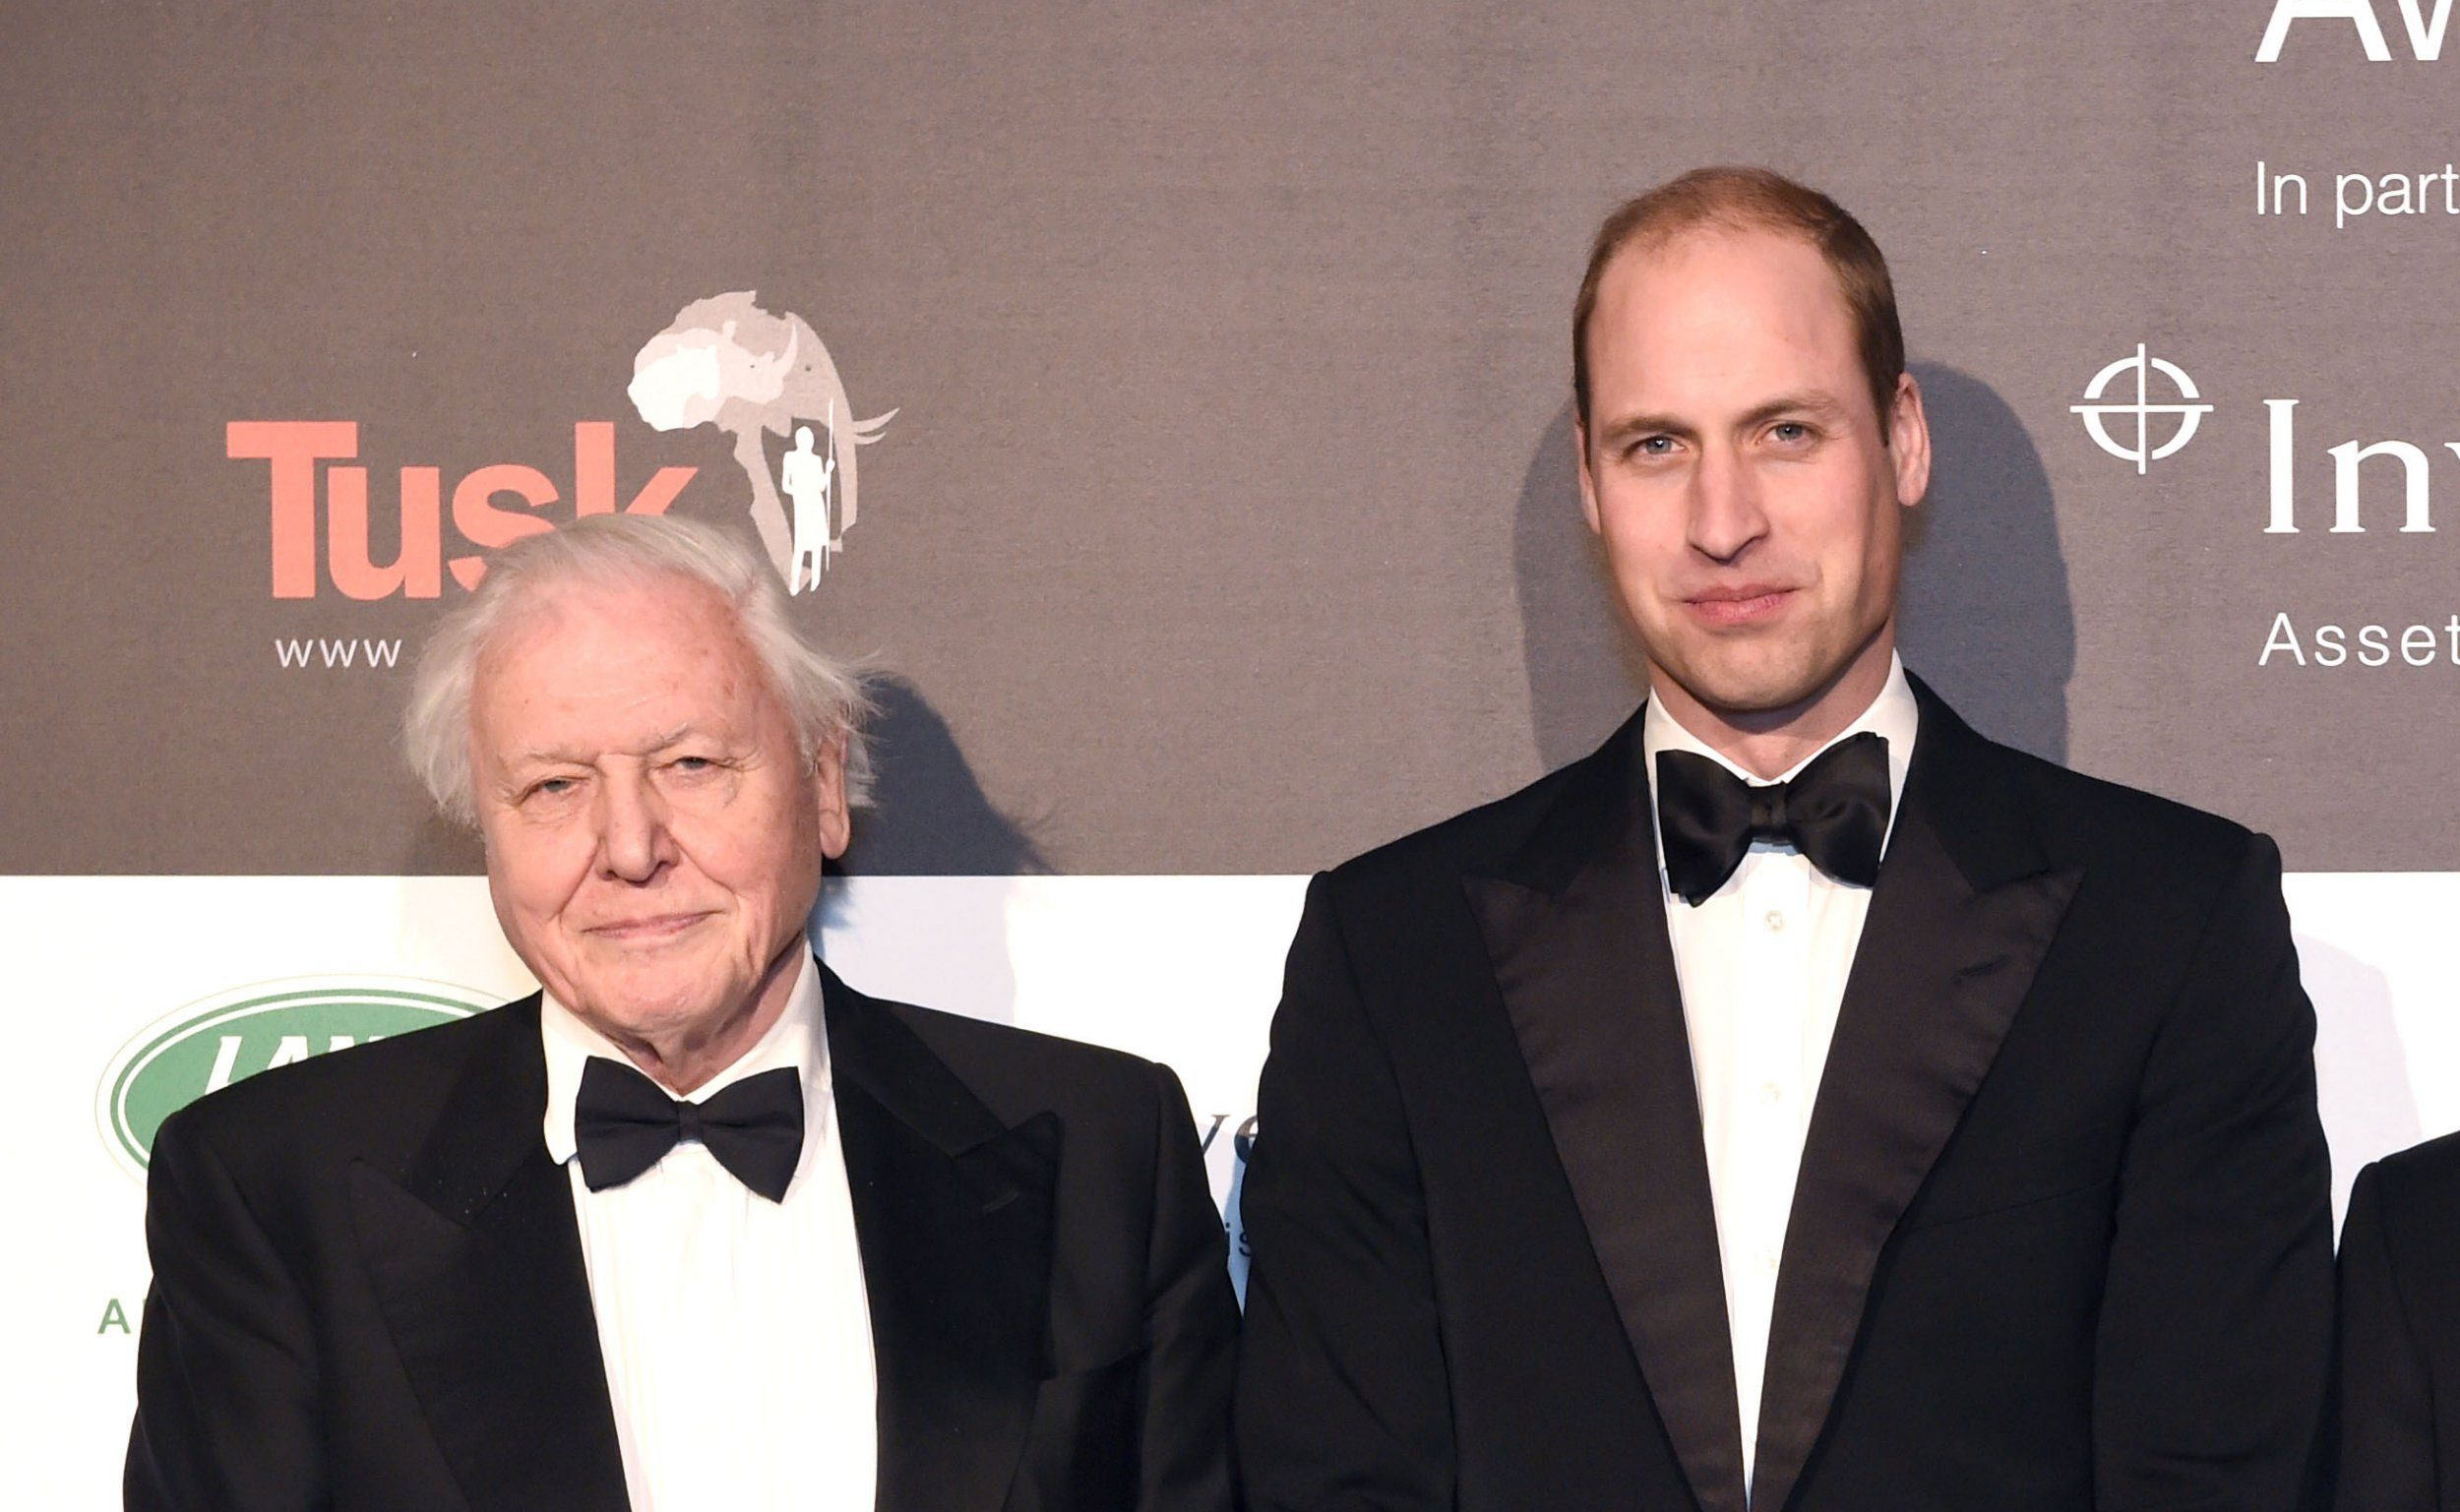 Prince William to interview Sir David Attenborough about environment at Davos